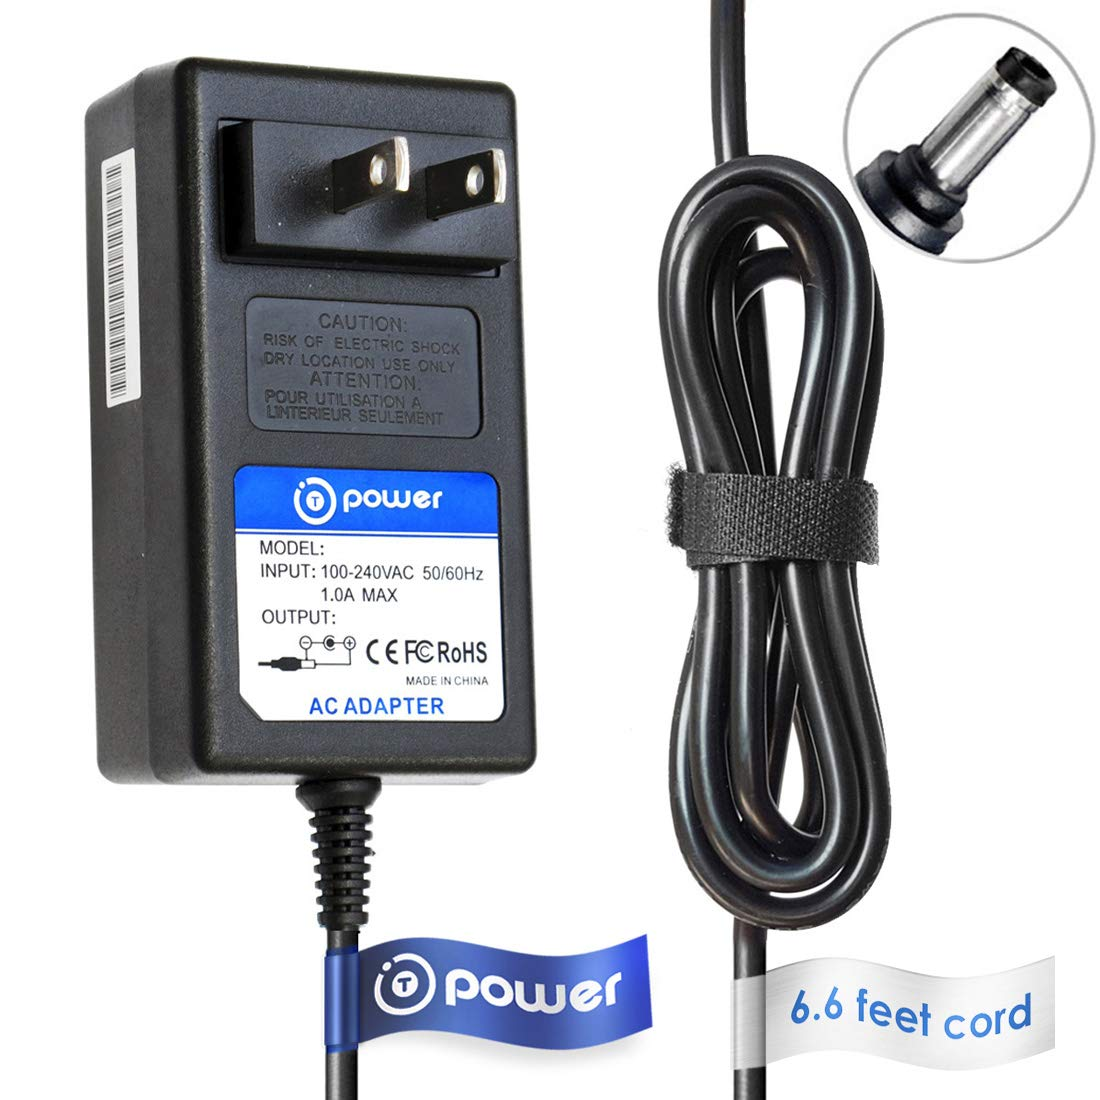 t power 6 6ft long cable ac dc adapter compatible with neat neatdesk desktop pass through scanner pc mac replacement power supply cord rh amazon com